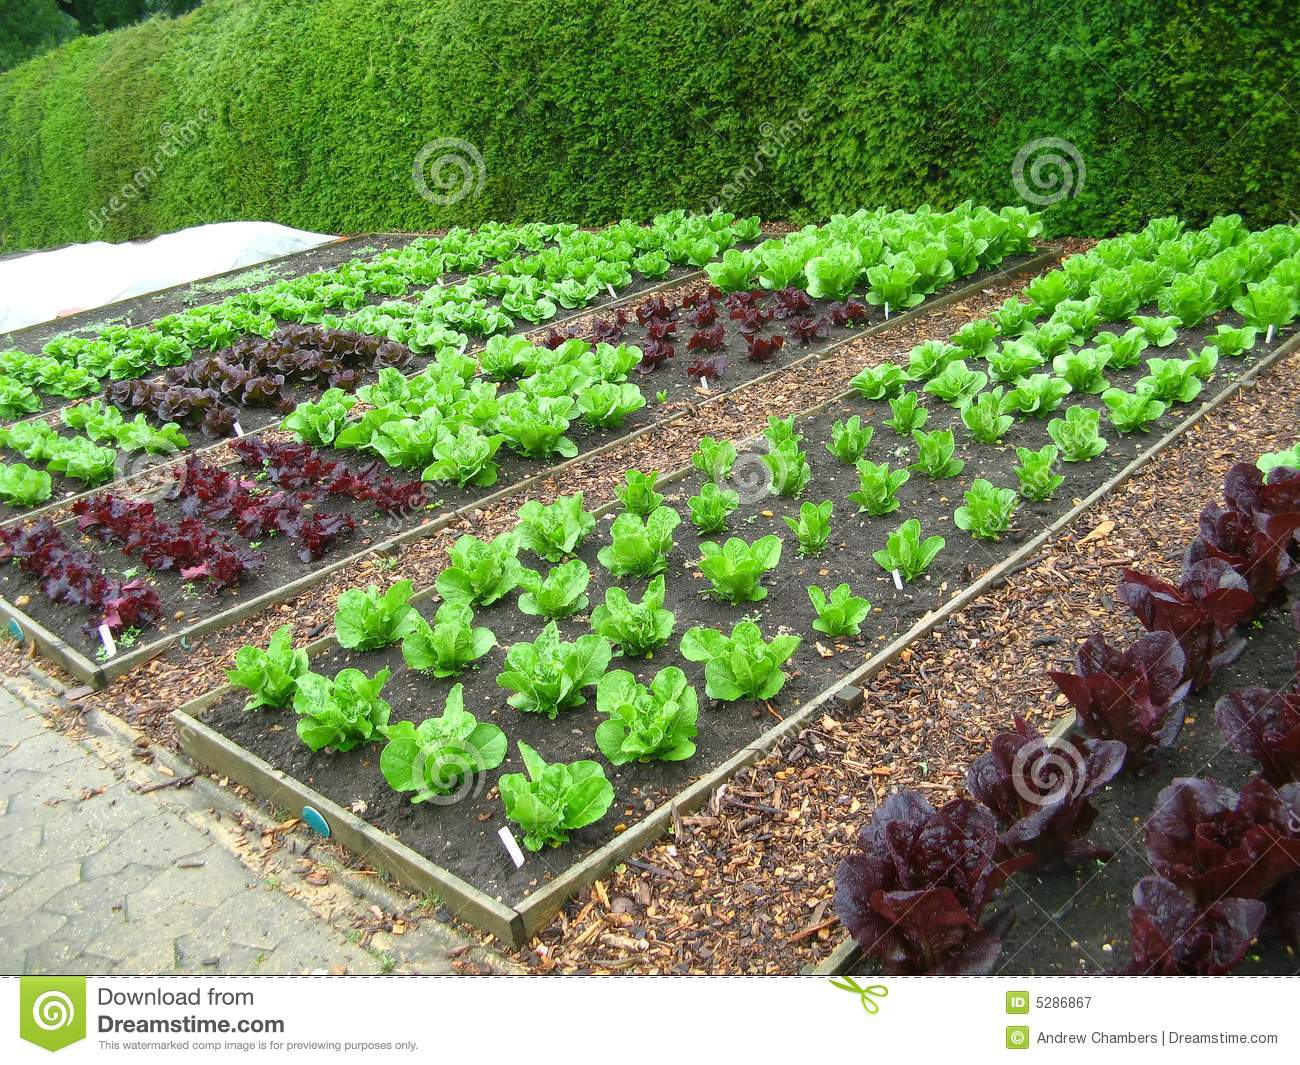 Several areas of gardening plots of different varieties of lettuce.